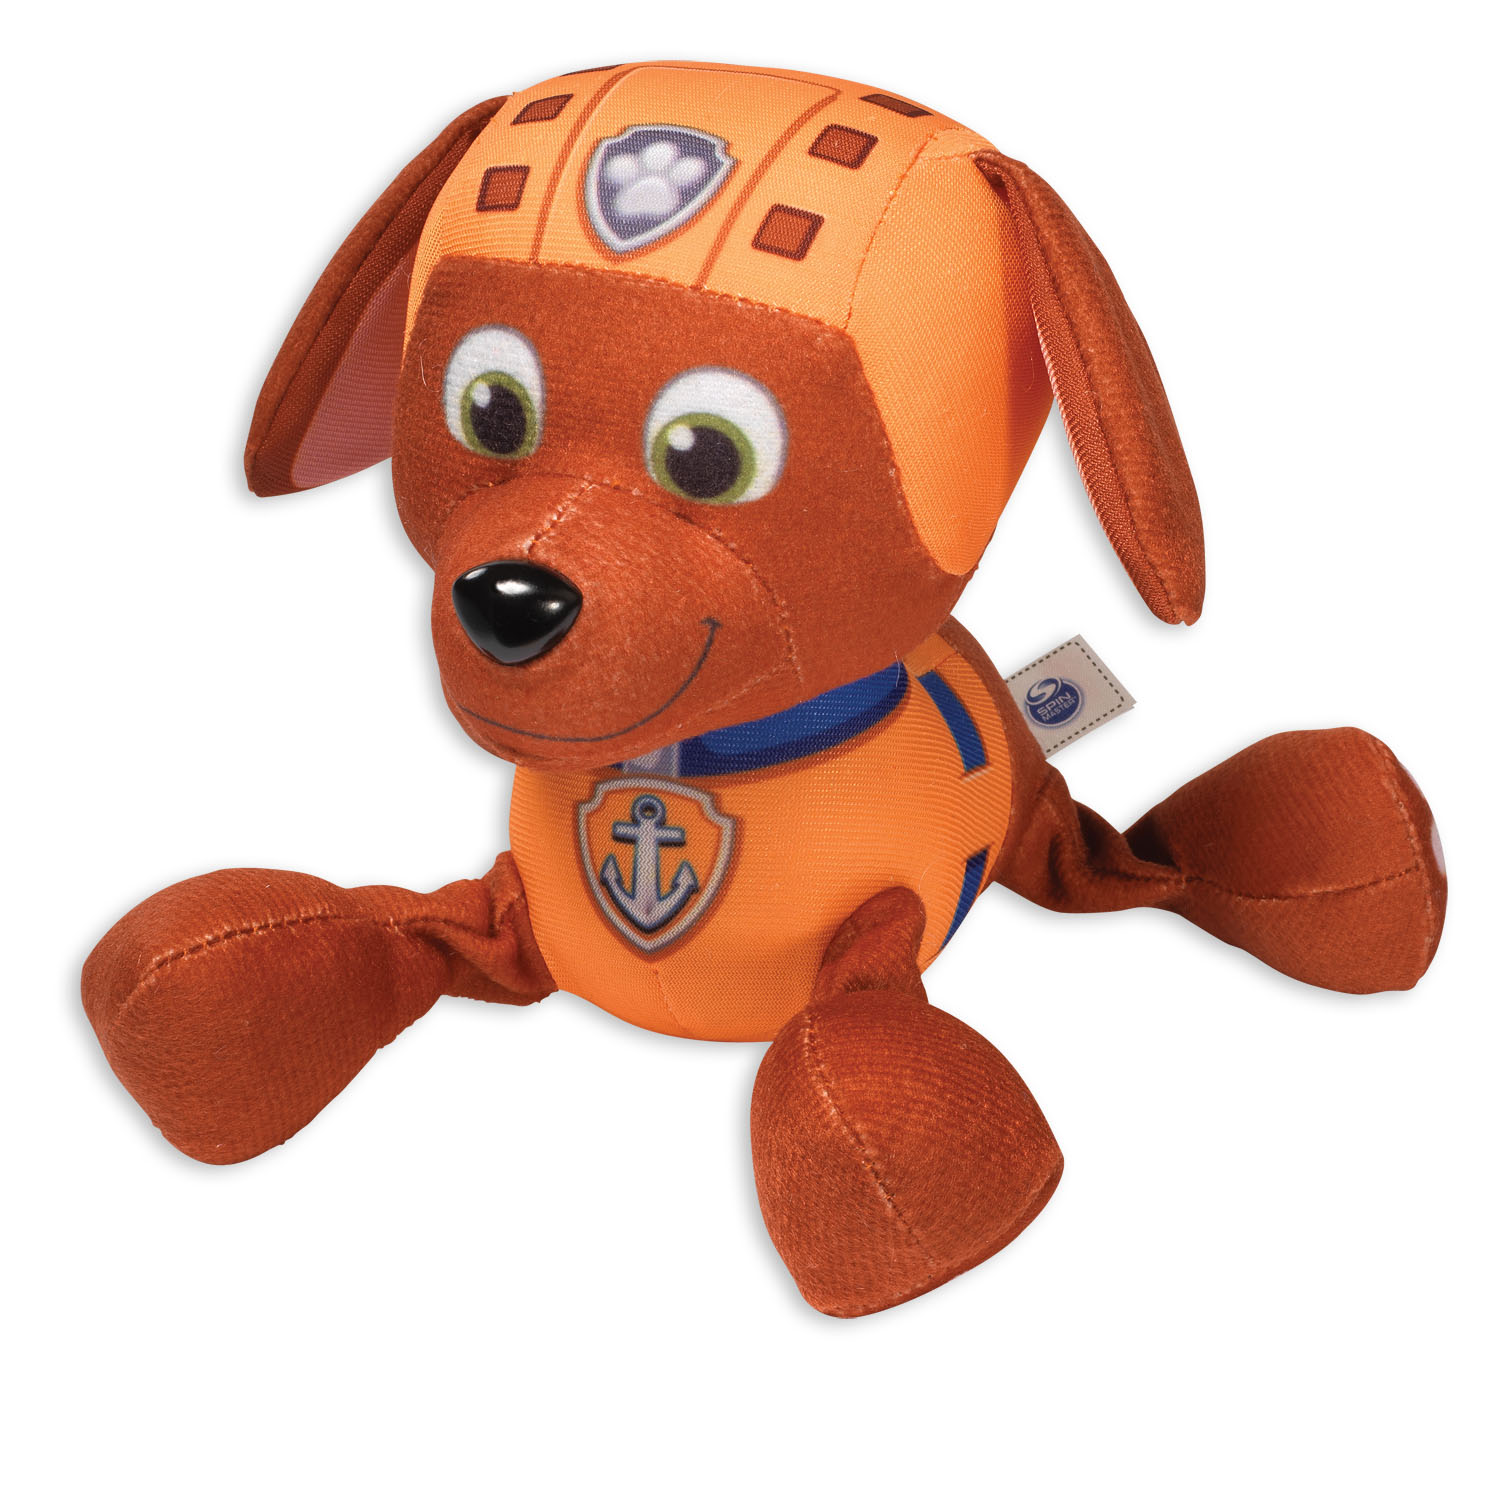 Spin Master To Launch Its Highly Anticipated Paw Patrol Toy Line At